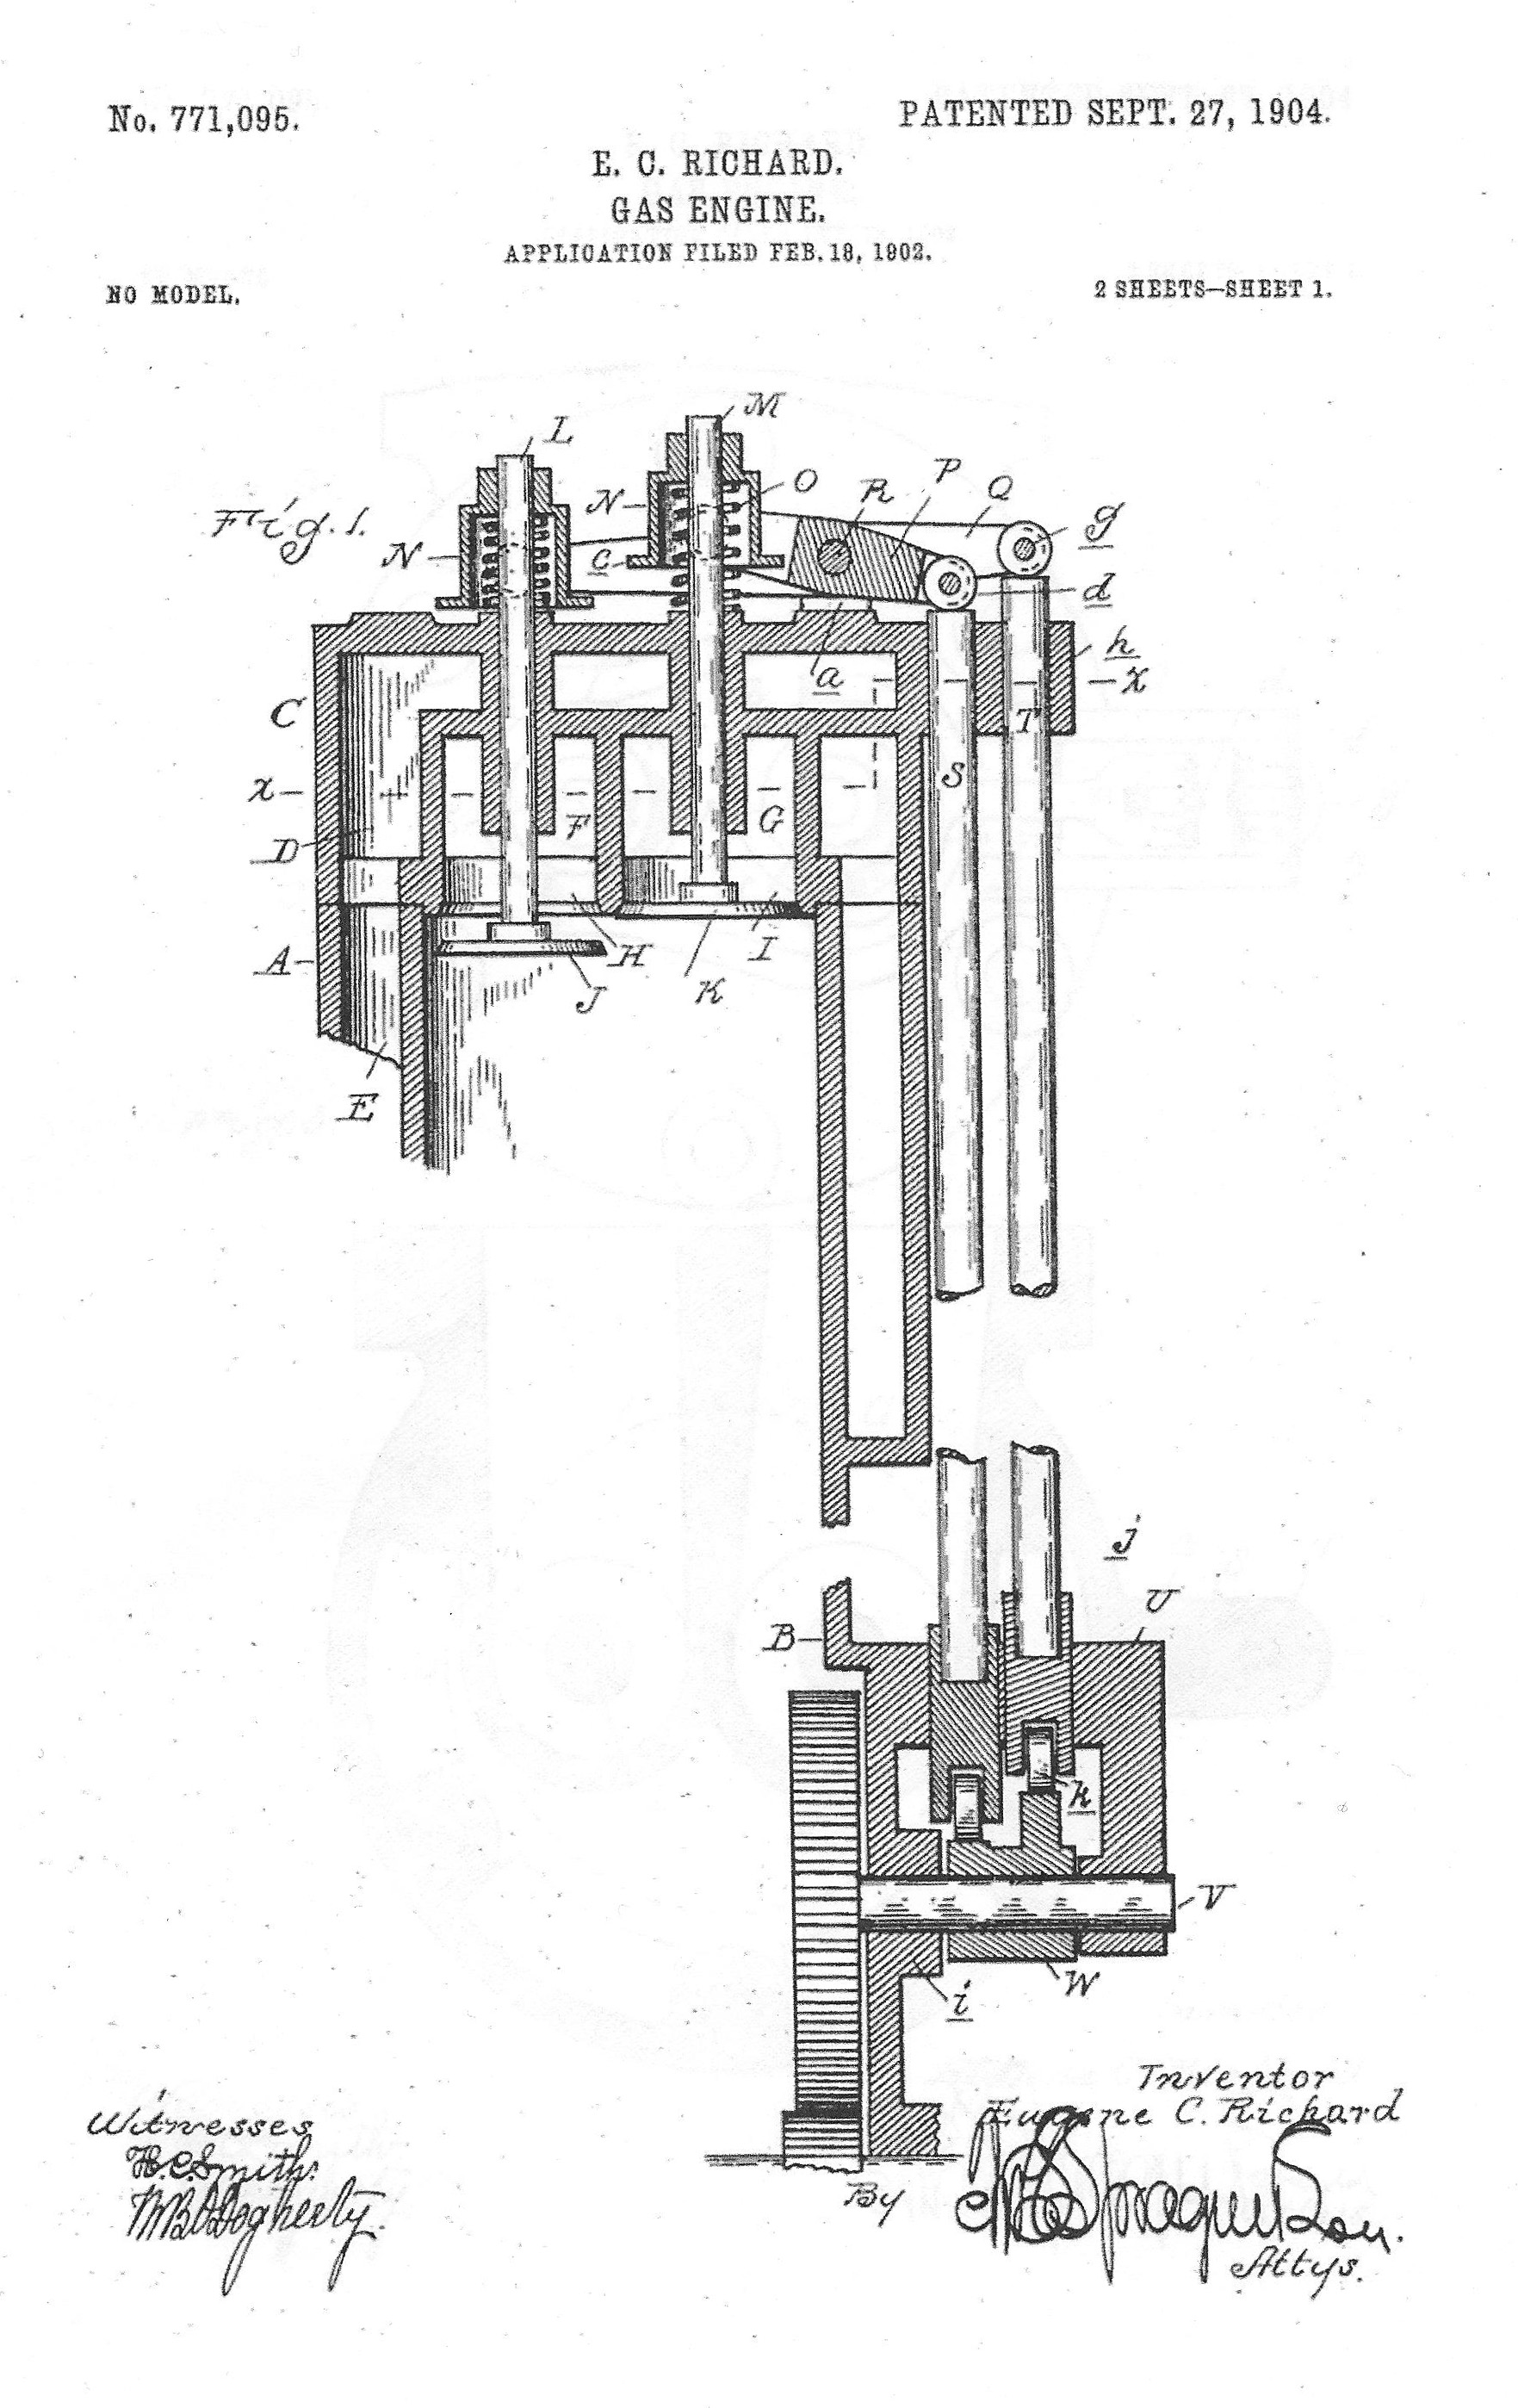 Valve-In-Head_1904_patent.jpg